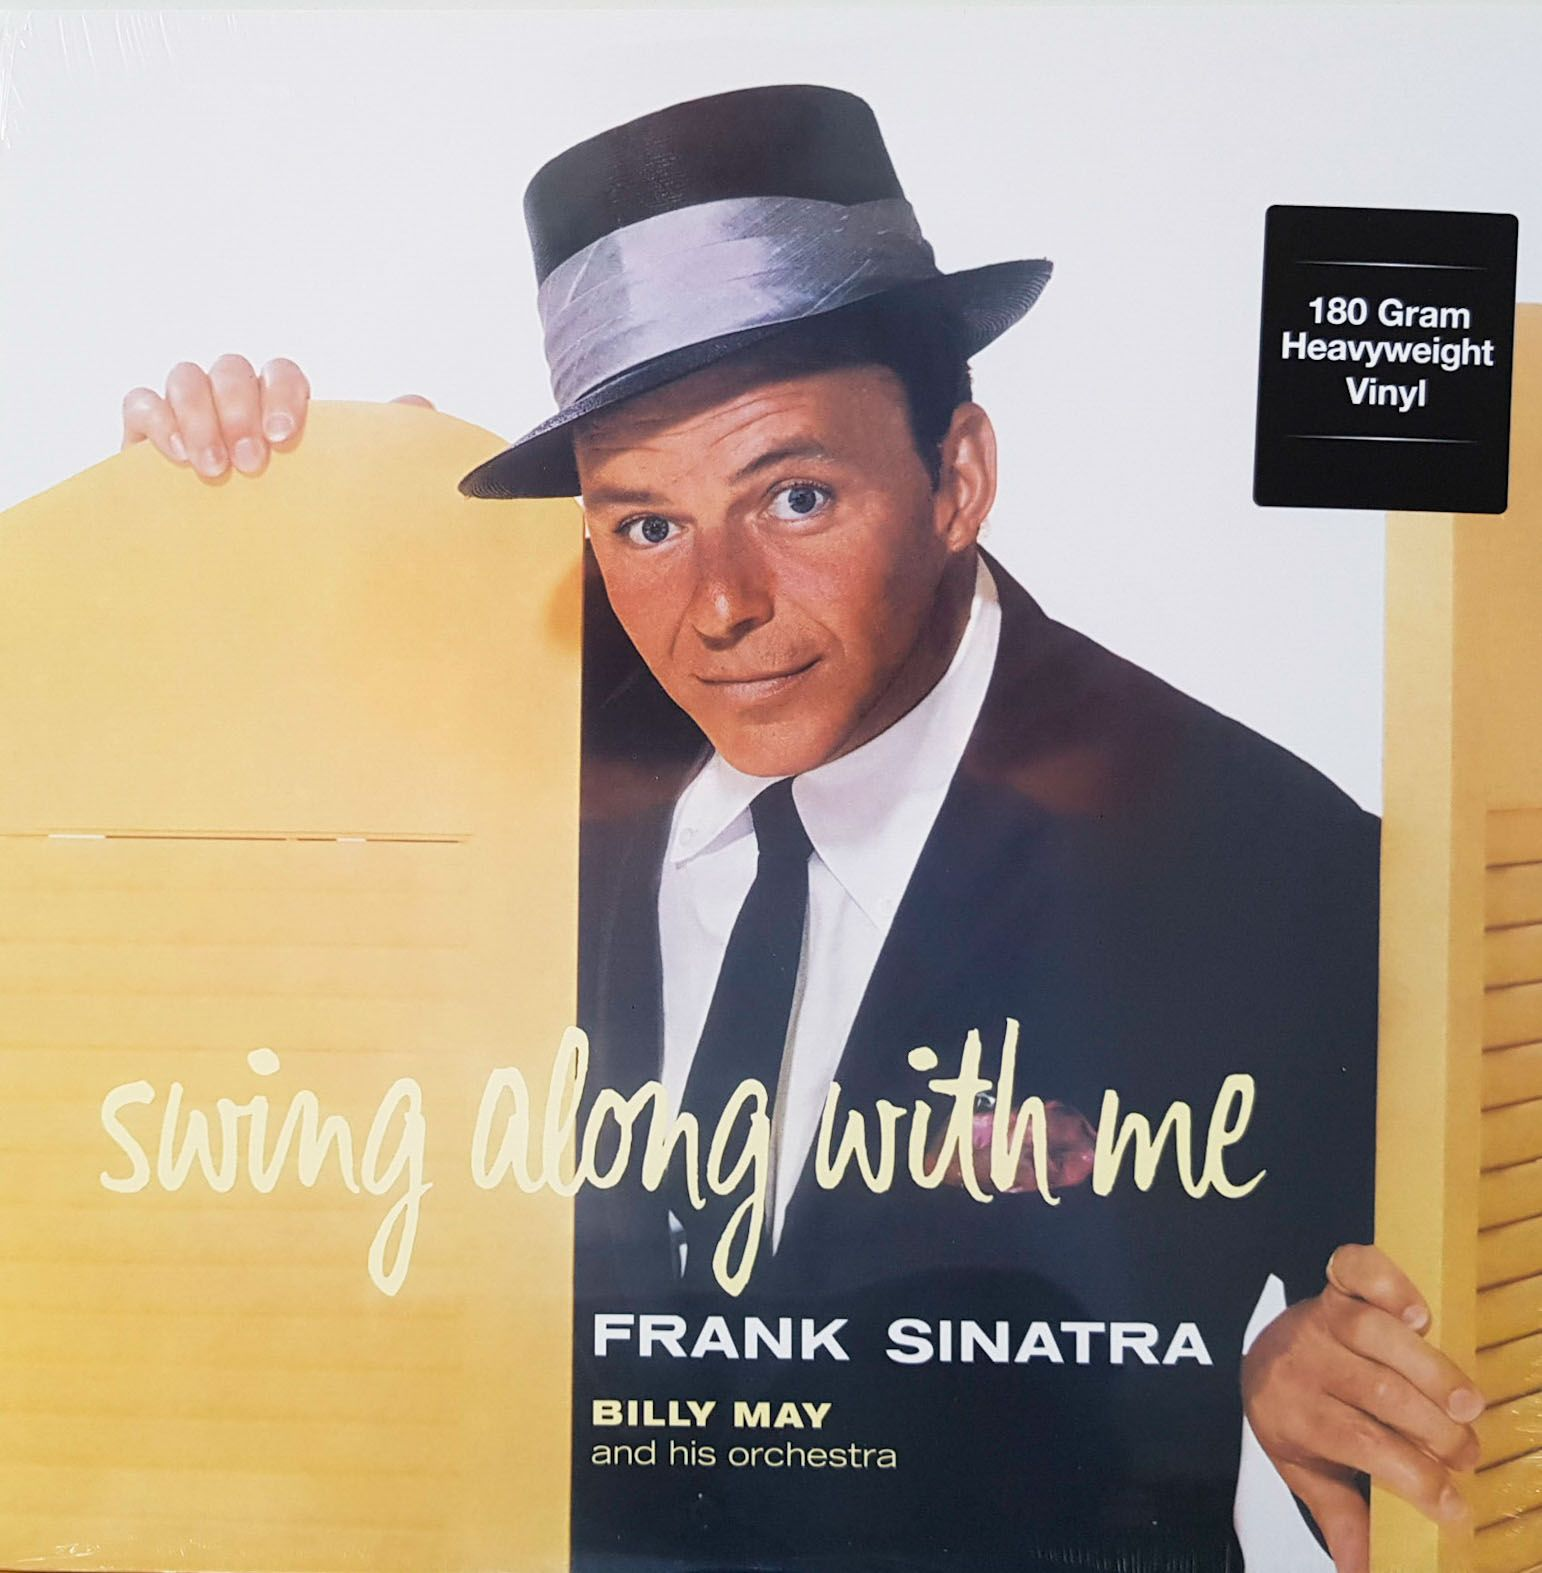 Lp Vinil Frank Sinatra Swing Along With Me